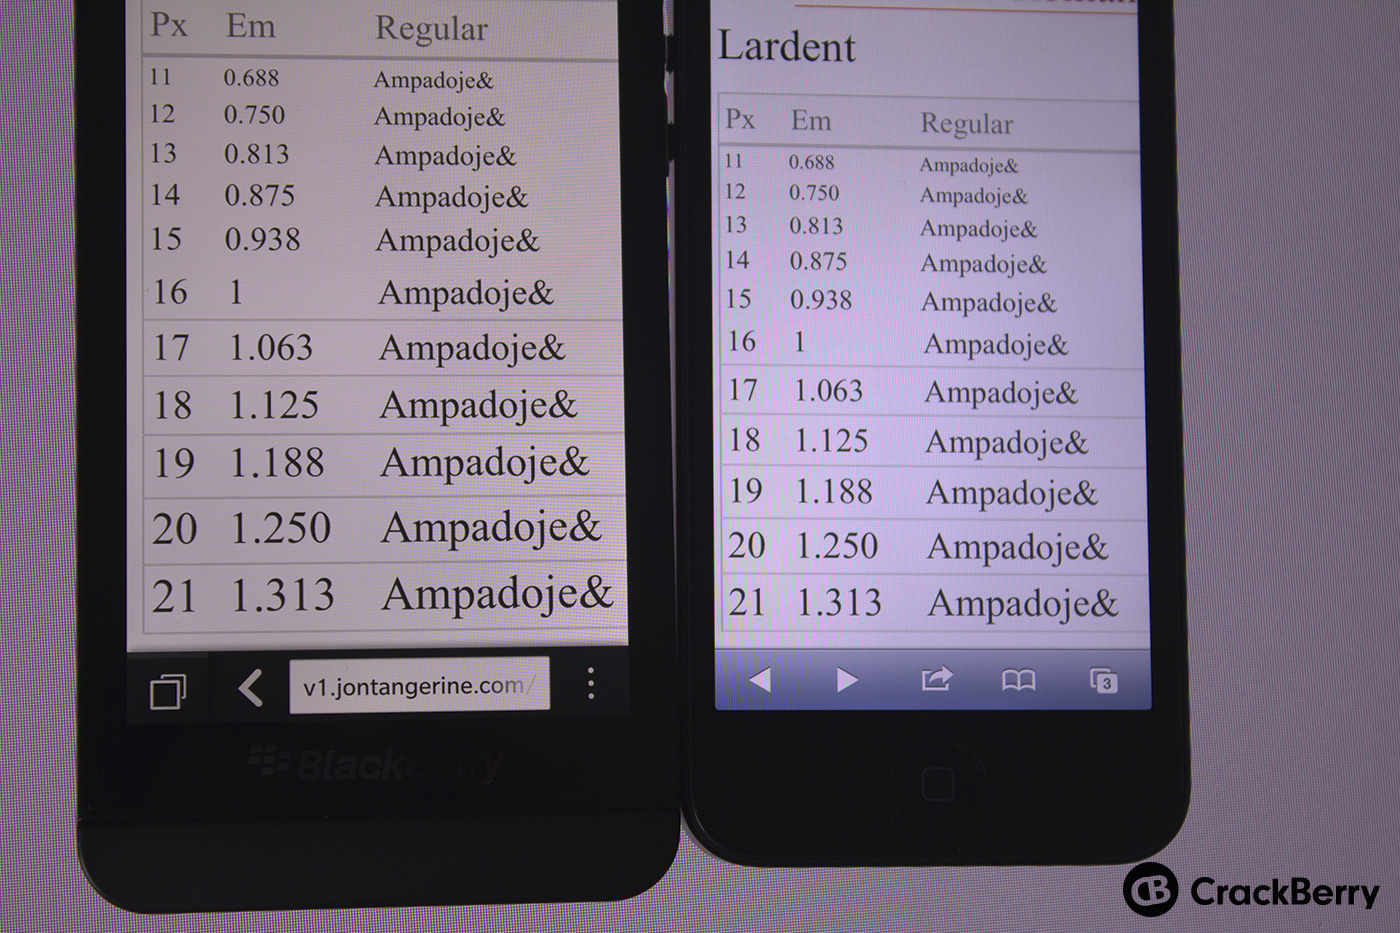 High Quality The BlackBerry Z10u0027s Display Has Excellent Sharpness And Clarity For  Reading Small Fonts